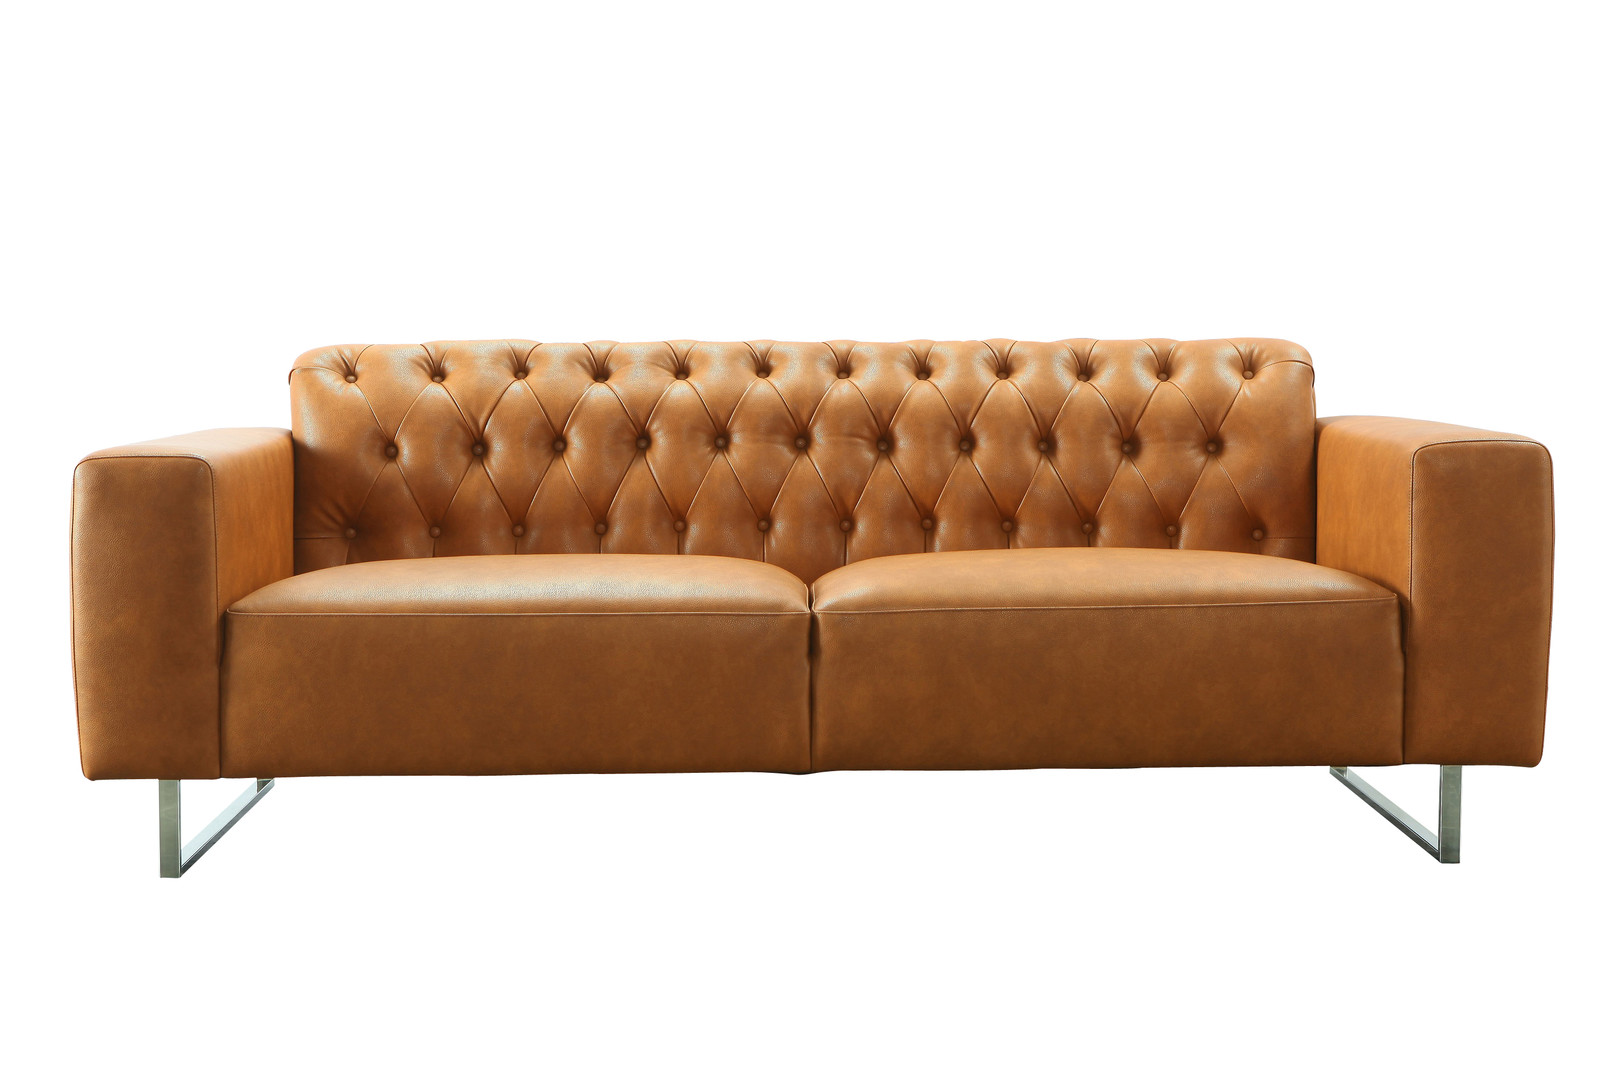 Vintage Couch Retro Look Couch Vintage Sofa